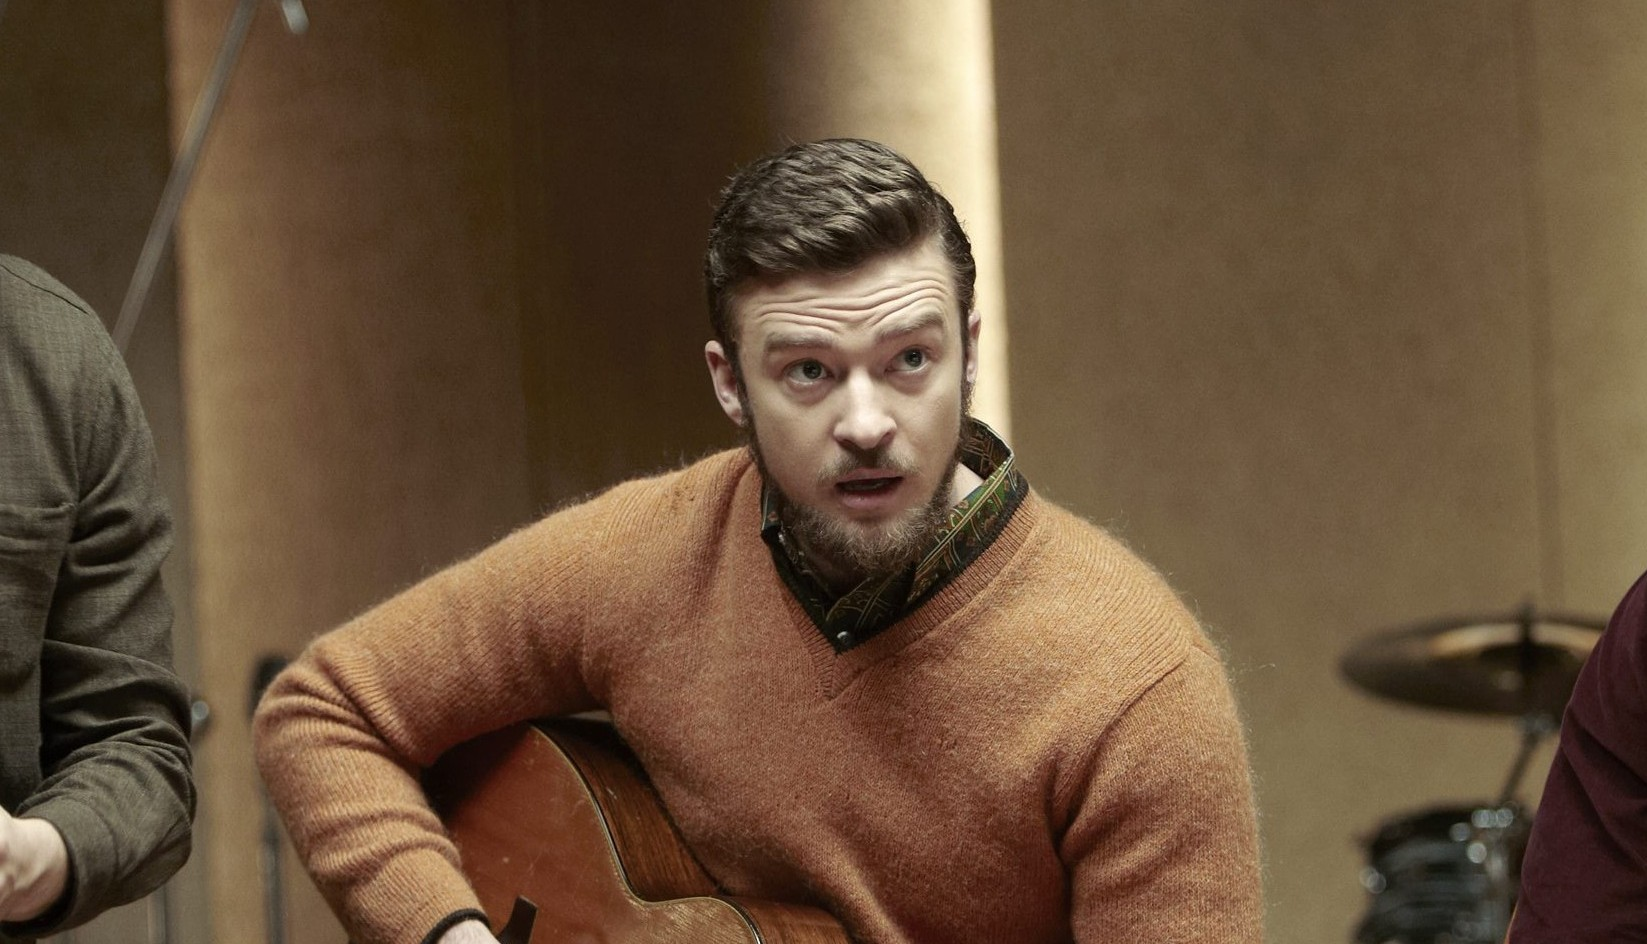 """FILE - This file film image released by CBS FIlms shows, from left, Oscar Isaac, Justin Timberlake and Adam Driver in a scene from """"Inside Llewyn Davis."""" In the Coen brothers film, Timberlake plays a supporting role as a cheery, sweater-wearing 1960s folk musician. But he also collaborated with producer T Bone Burnett on the movie's memorable period songs and helped shape the film's most unforgettable and comic tune, """"Please Mr. Kennedy."""" (AP Photo/CBS FIlms, Alison Rosa, File) ORG XMIT: NYET269"""